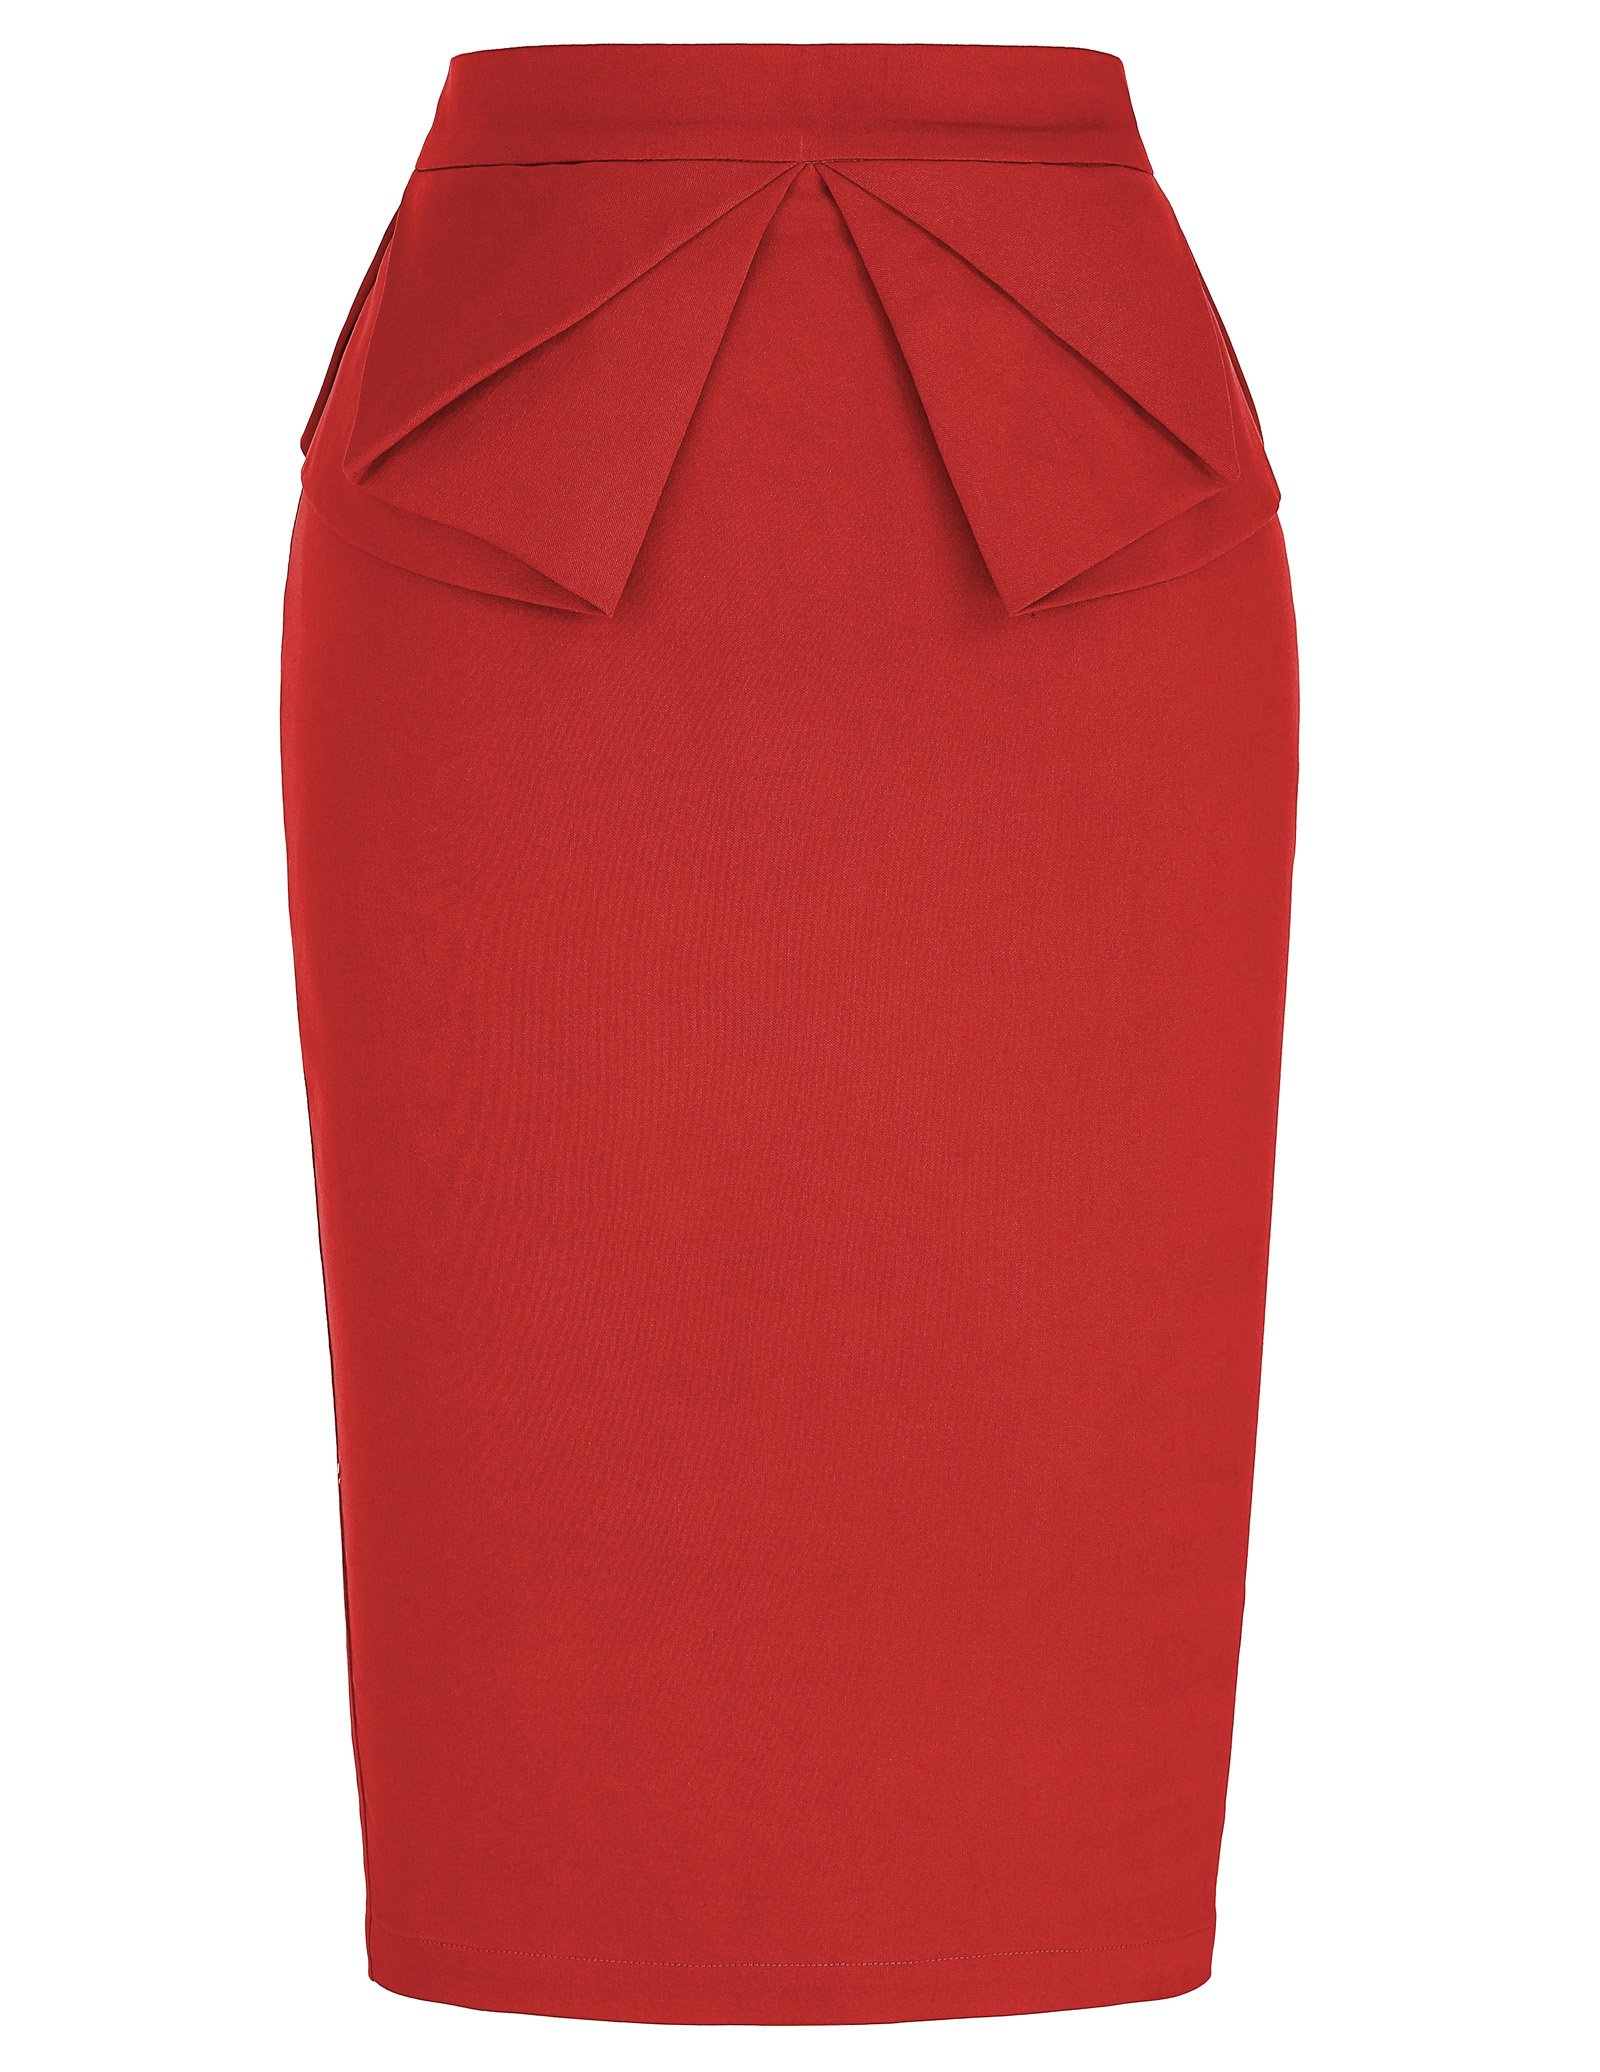 PrettyWorld Vintage Dress Elegant Women's Elastic Waist Stretchy Office Pencil Skirt Red (L) KL-2 CL454